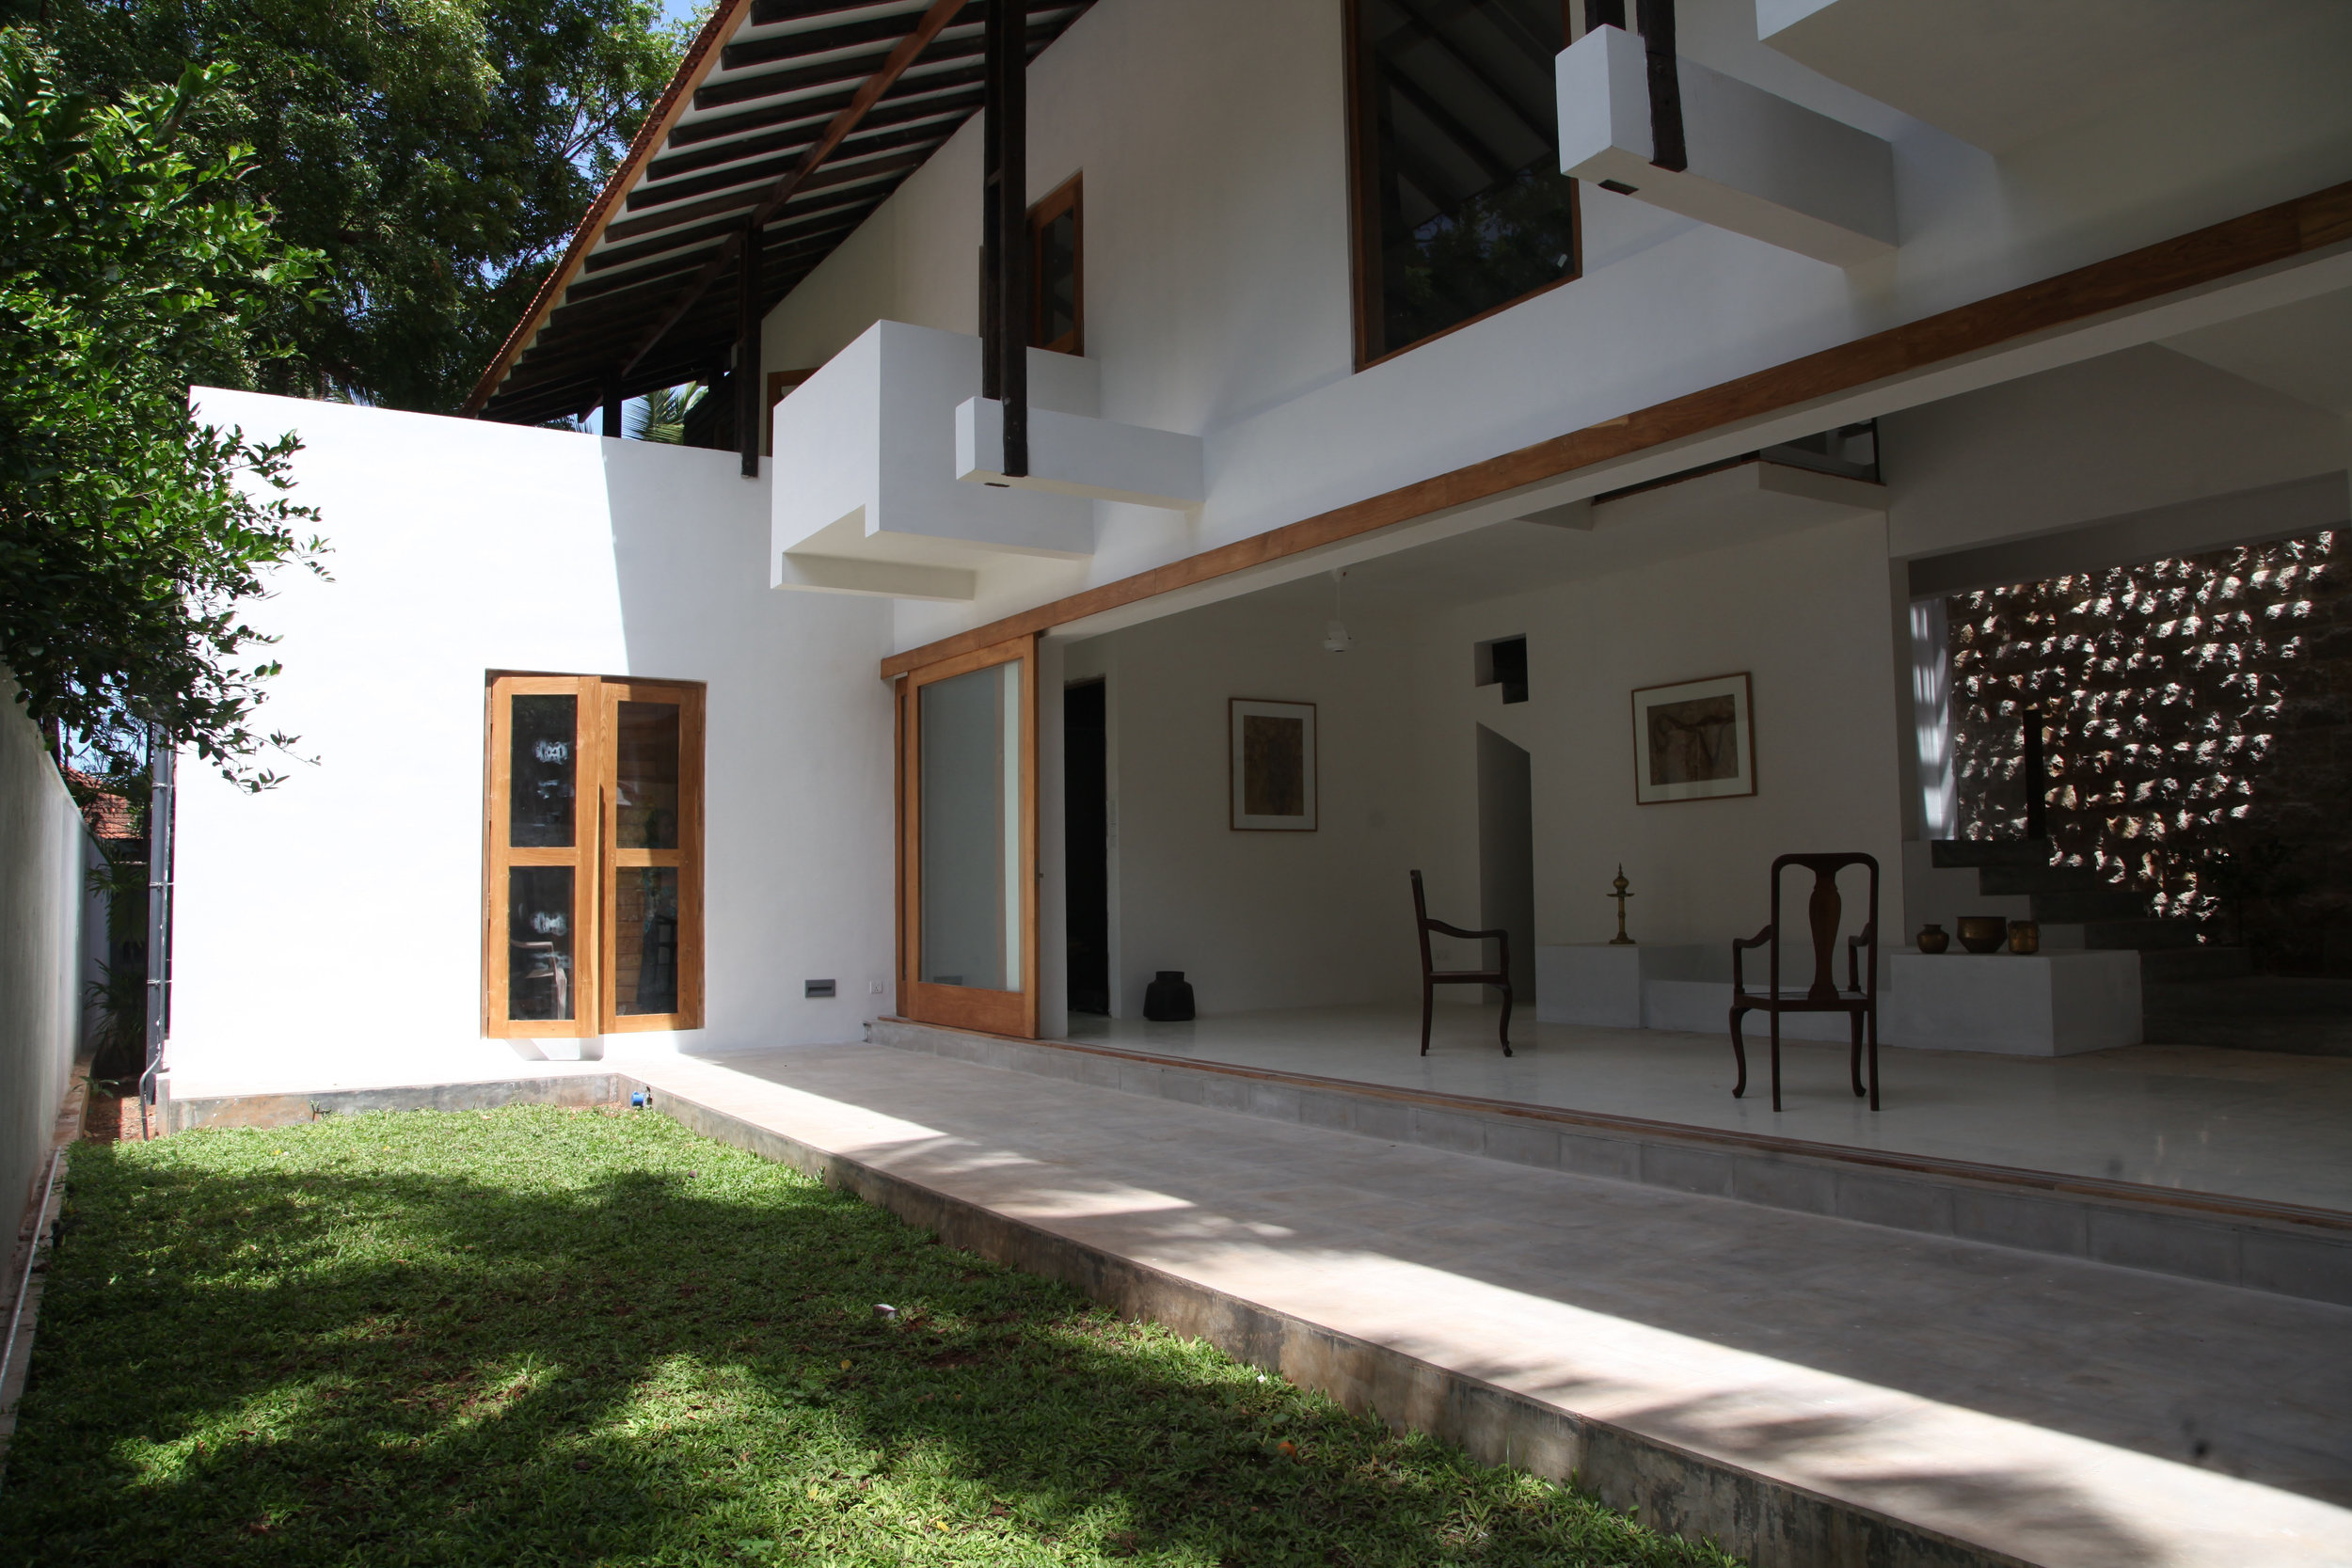 The Jaffna house - inward-facing private courtyard